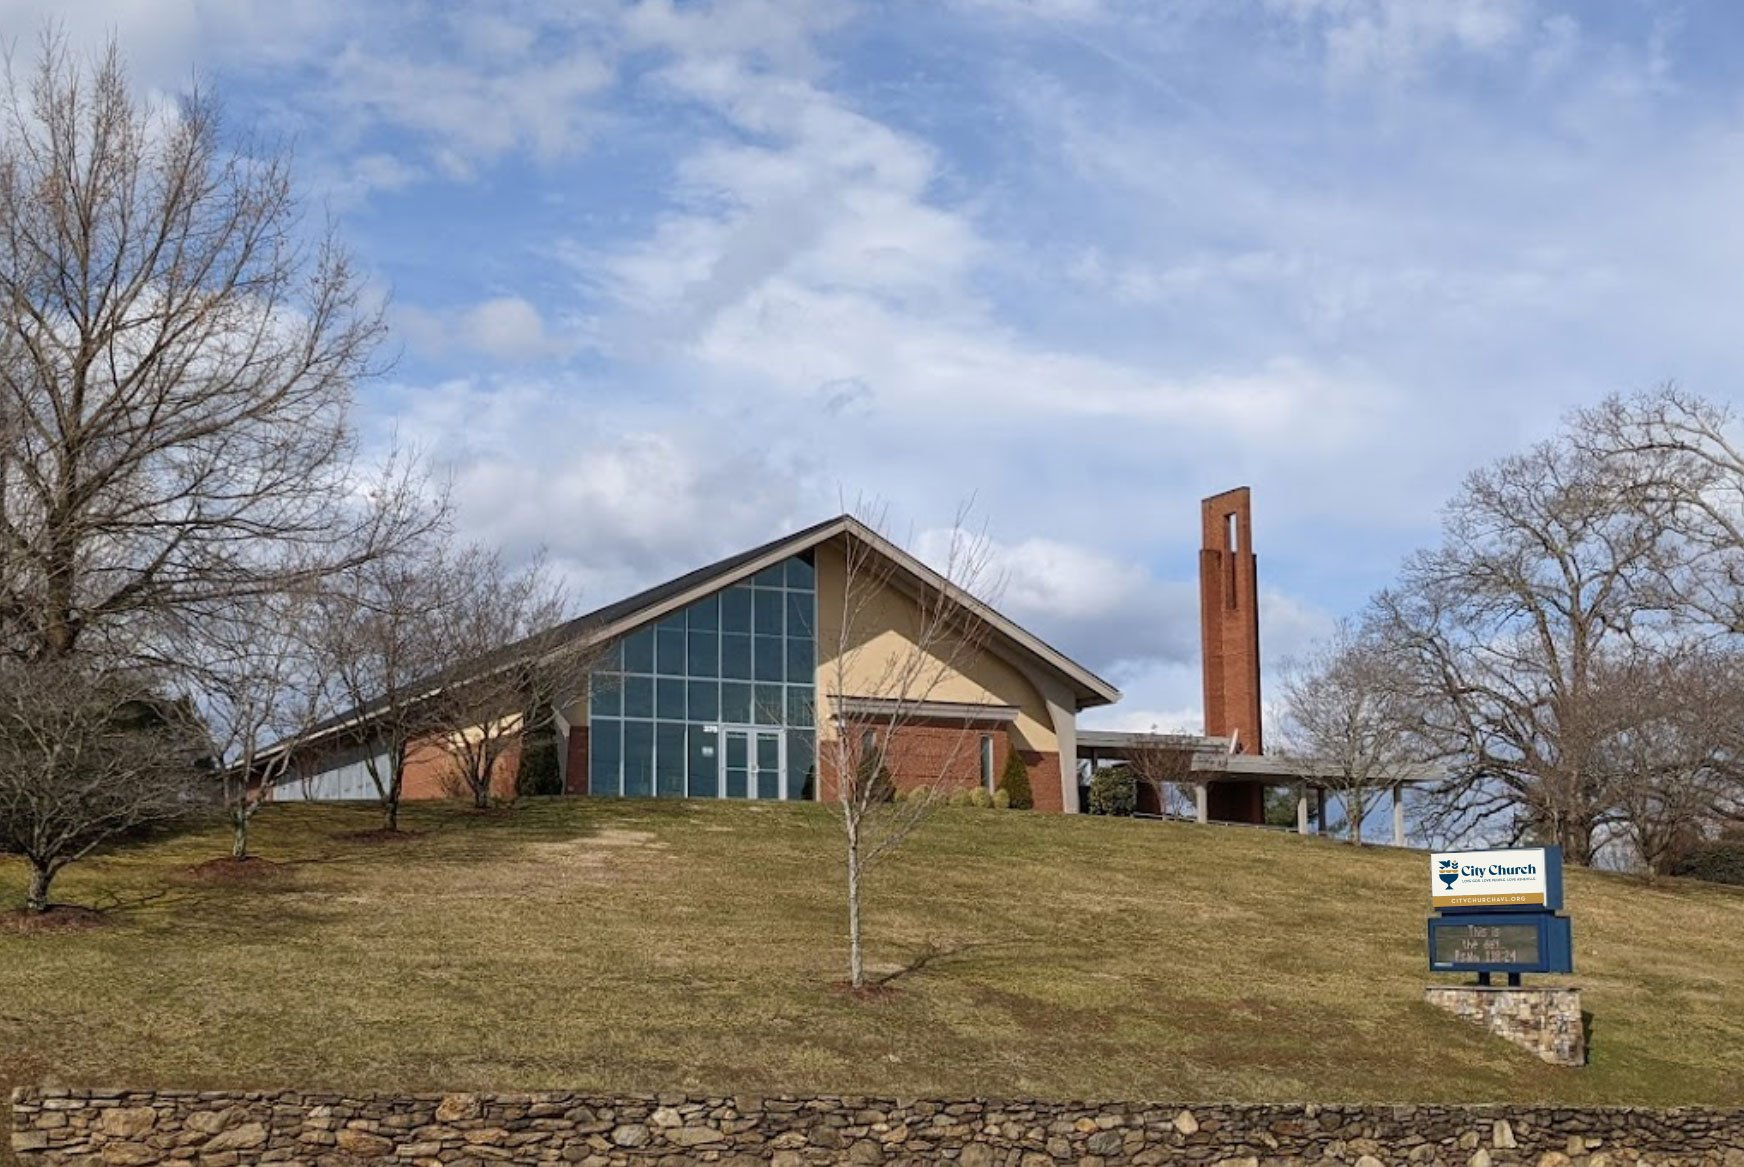 City Church of Asheville meeting at Foster SDA Church on Sundays at 10 a.m.